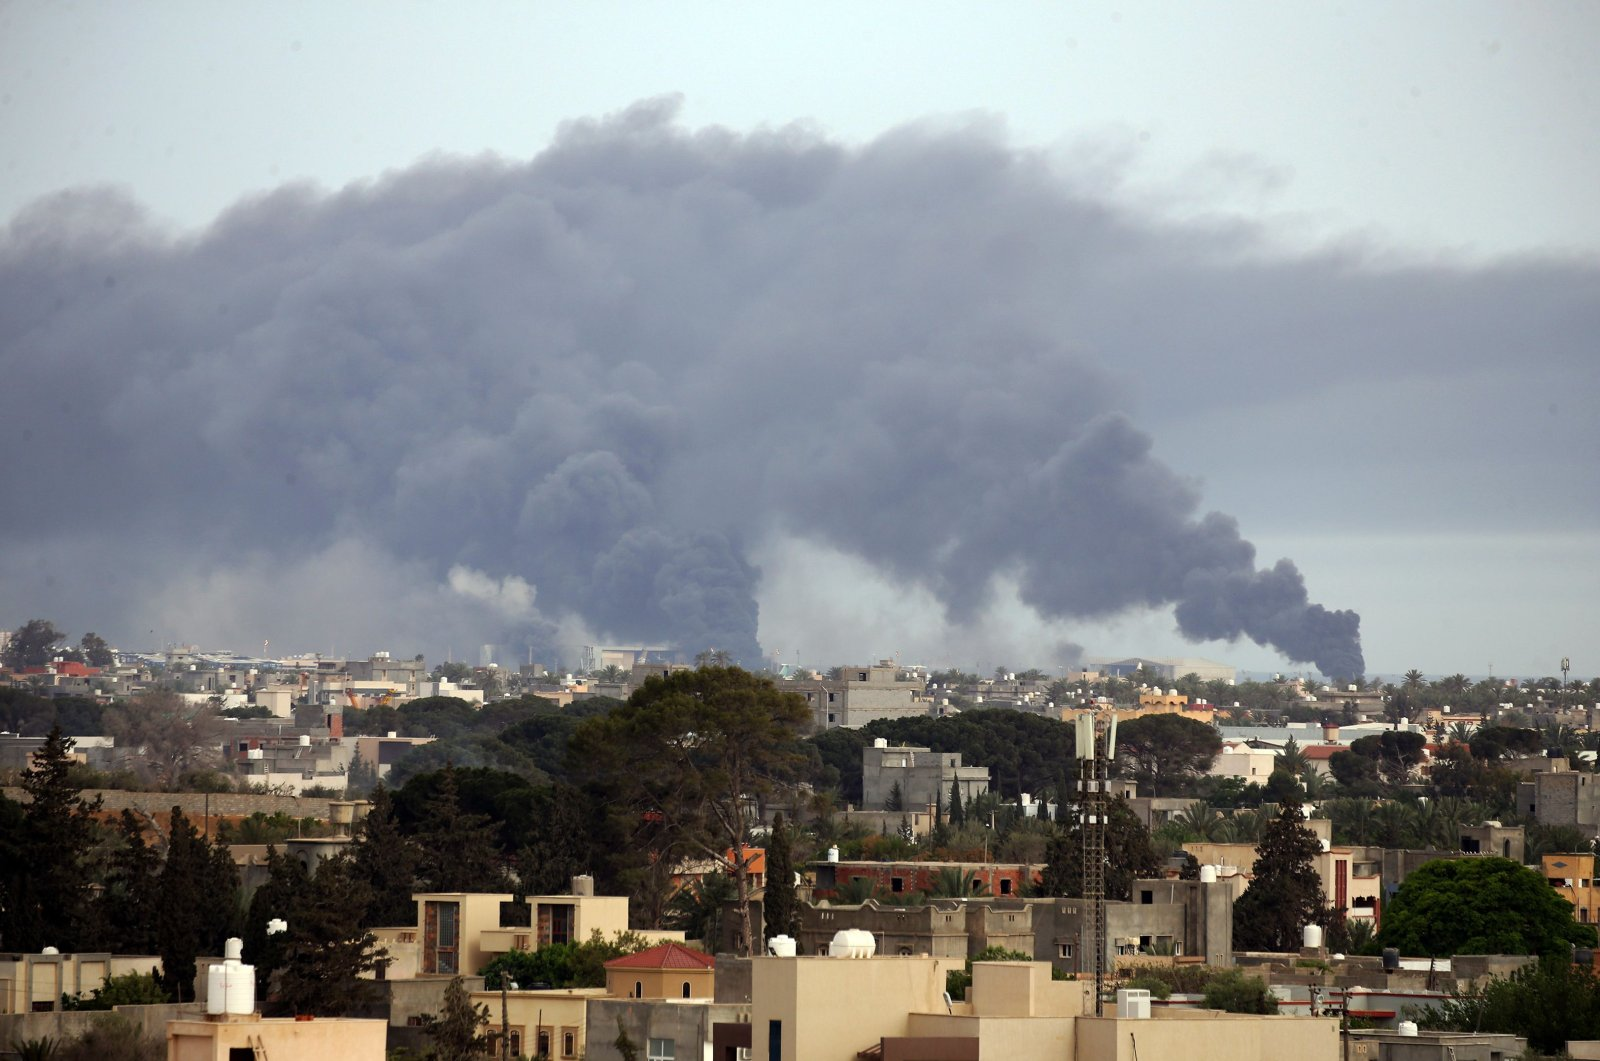 Smoke fumes rise above buildings in the Libyan capital Tripoli, during reported shelling by Khalifa Haftar's forces, on May 9, 2020. (AFP Photo)